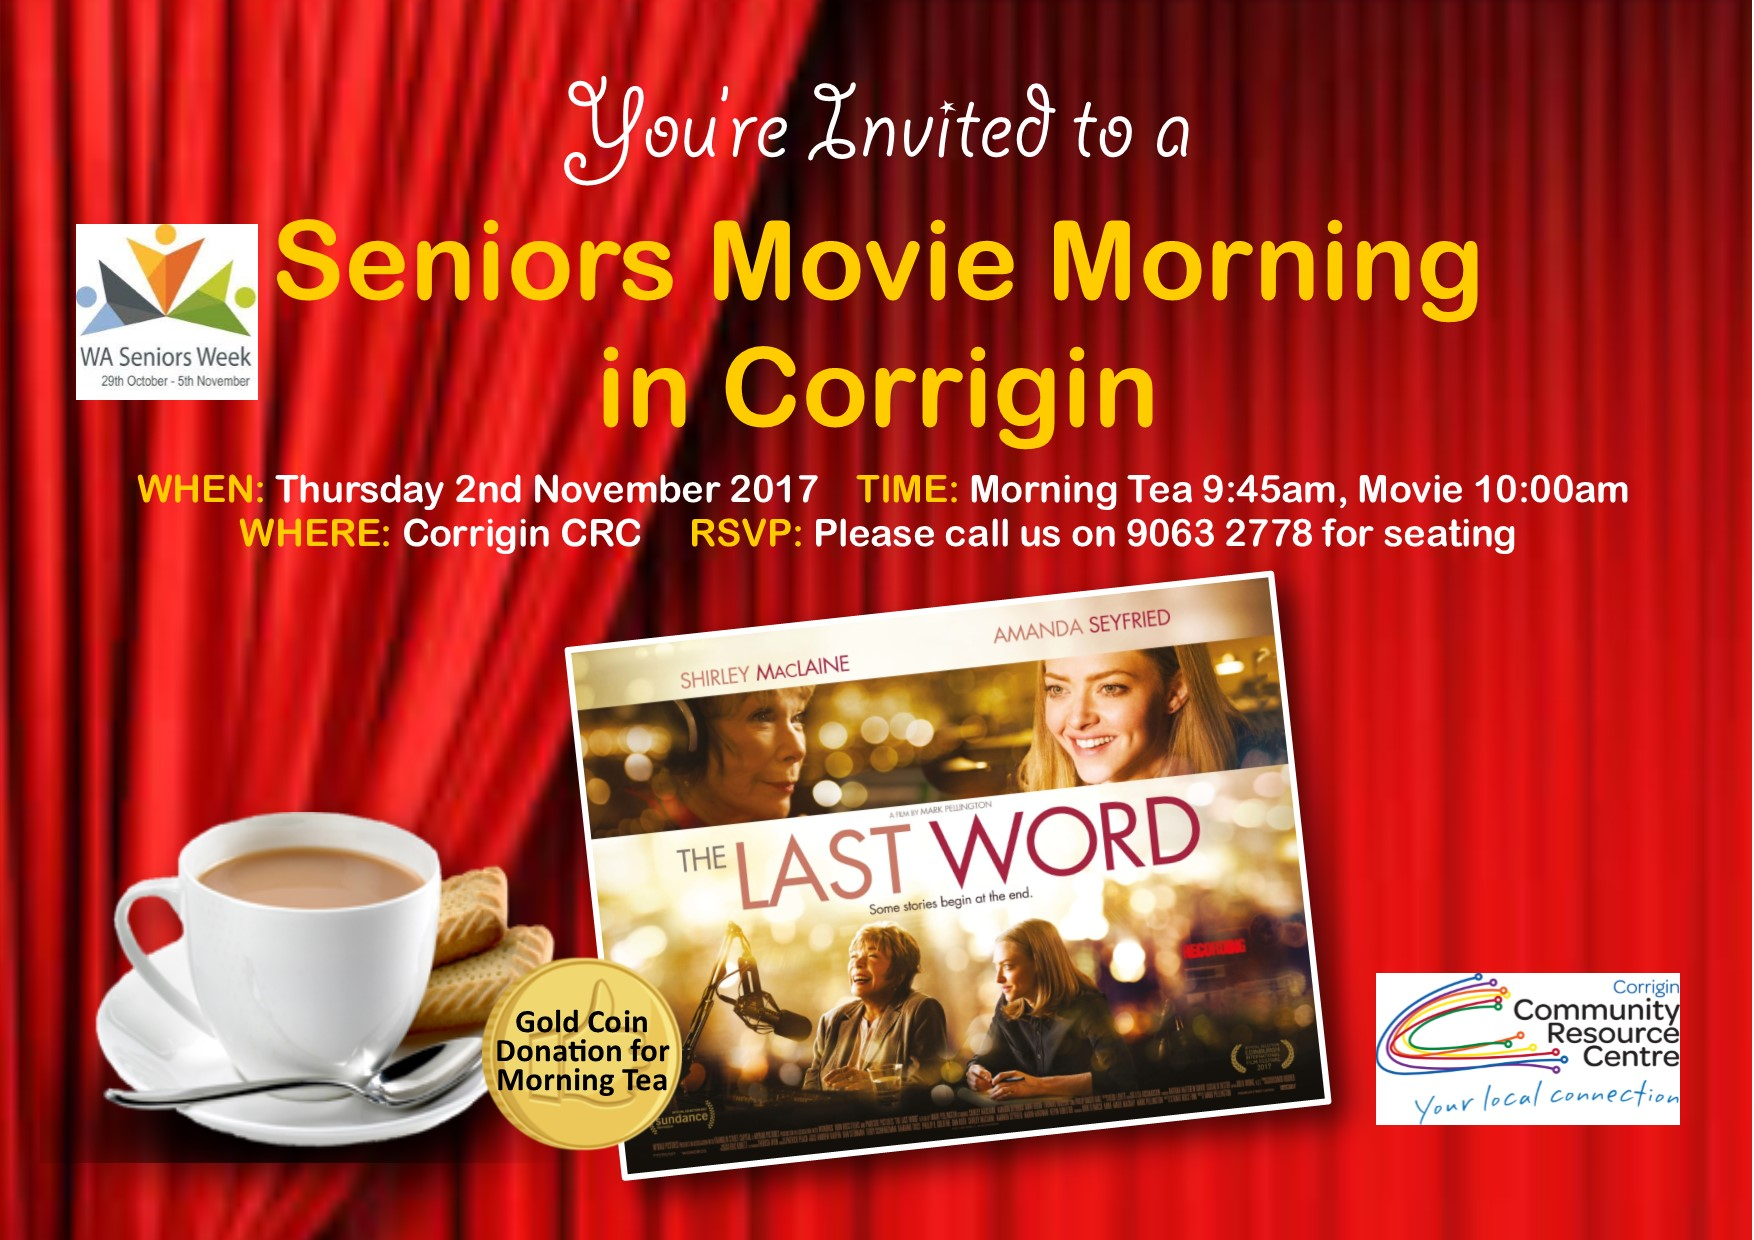 Image: Seniors Movie Morning in Corrigin